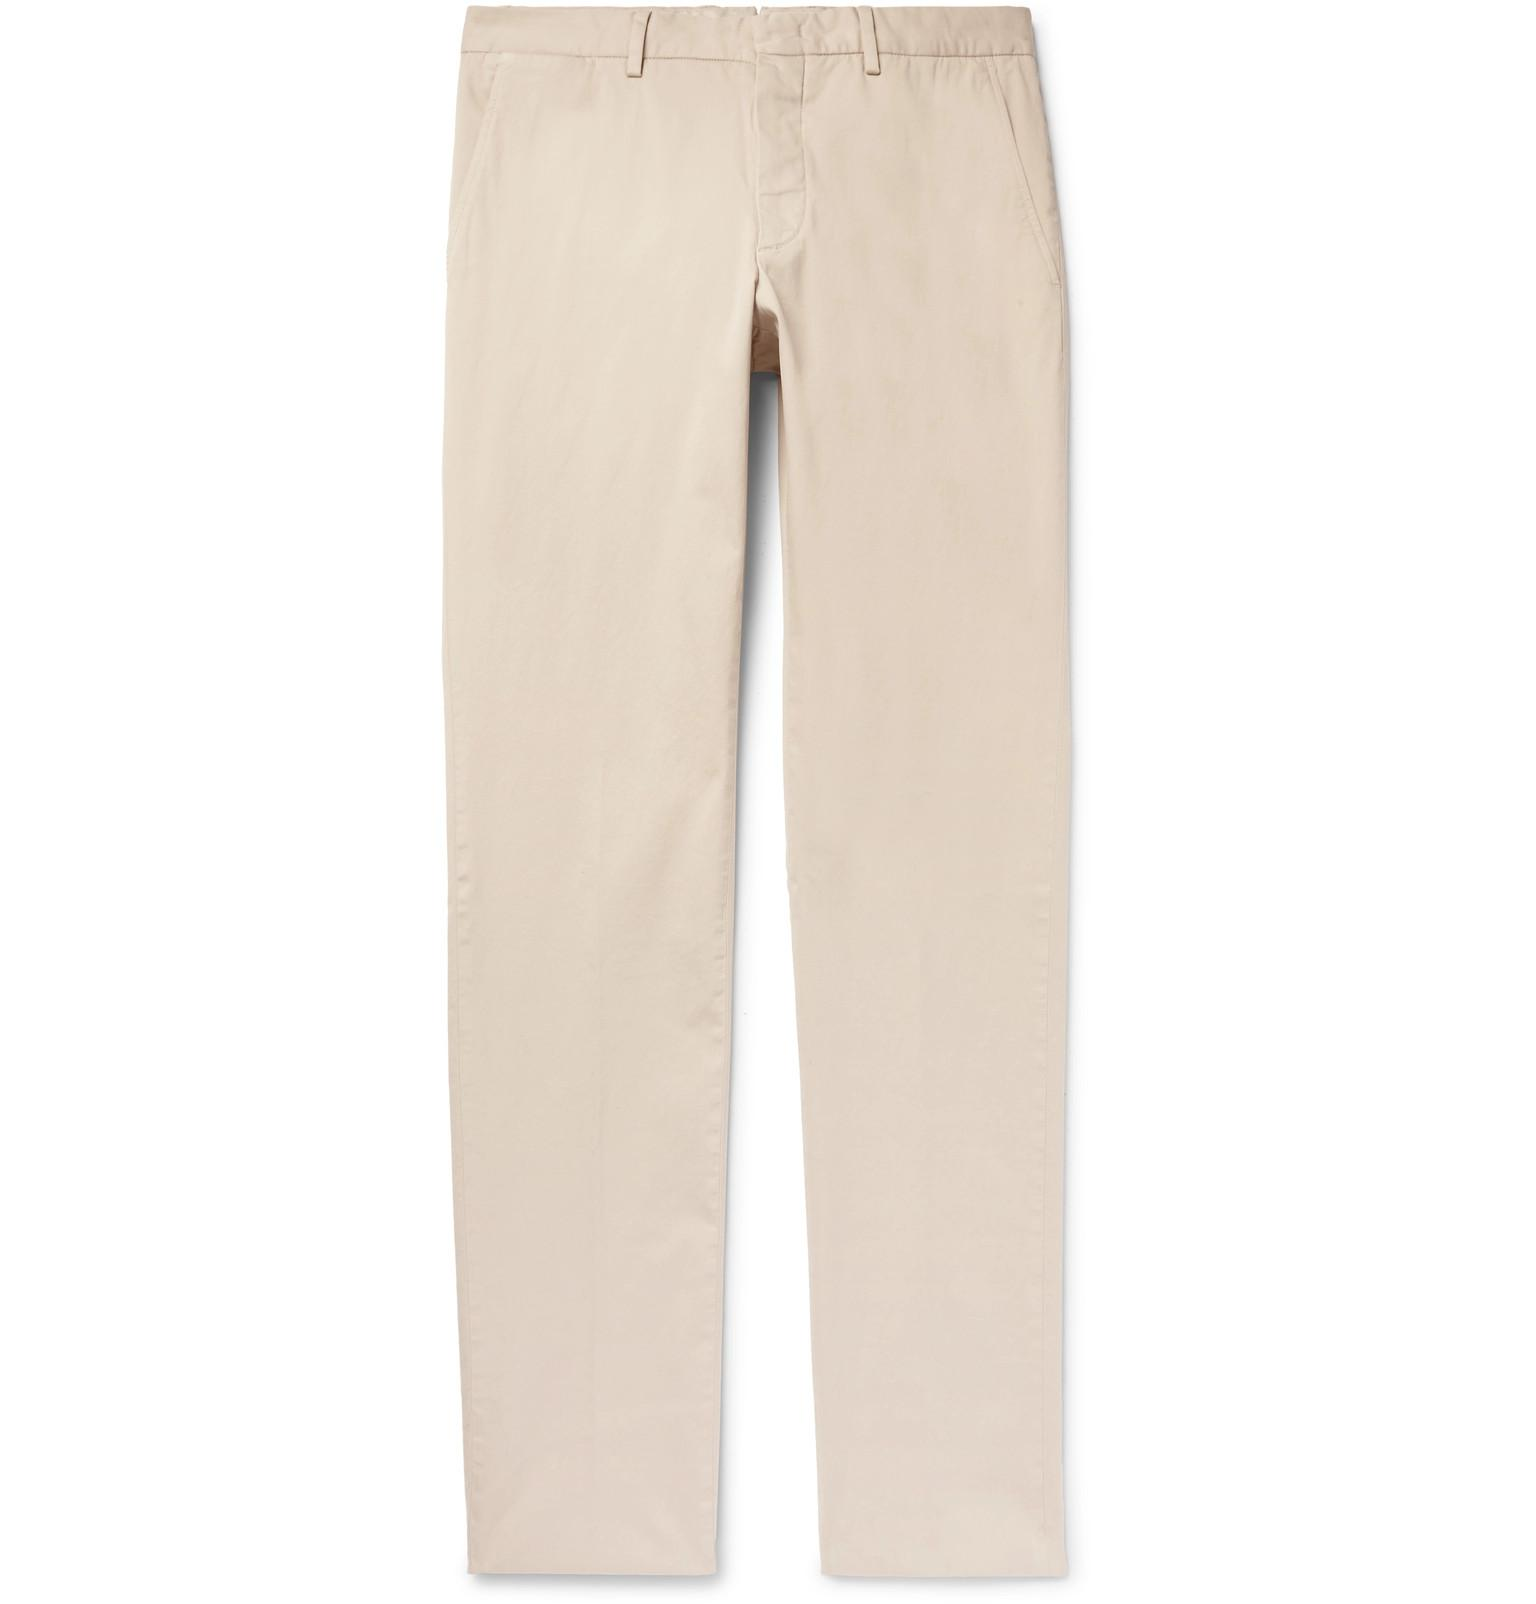 Slim-fit Garment-dyed Stretch-cotton Twill Trousers Ermenegildo Zegna